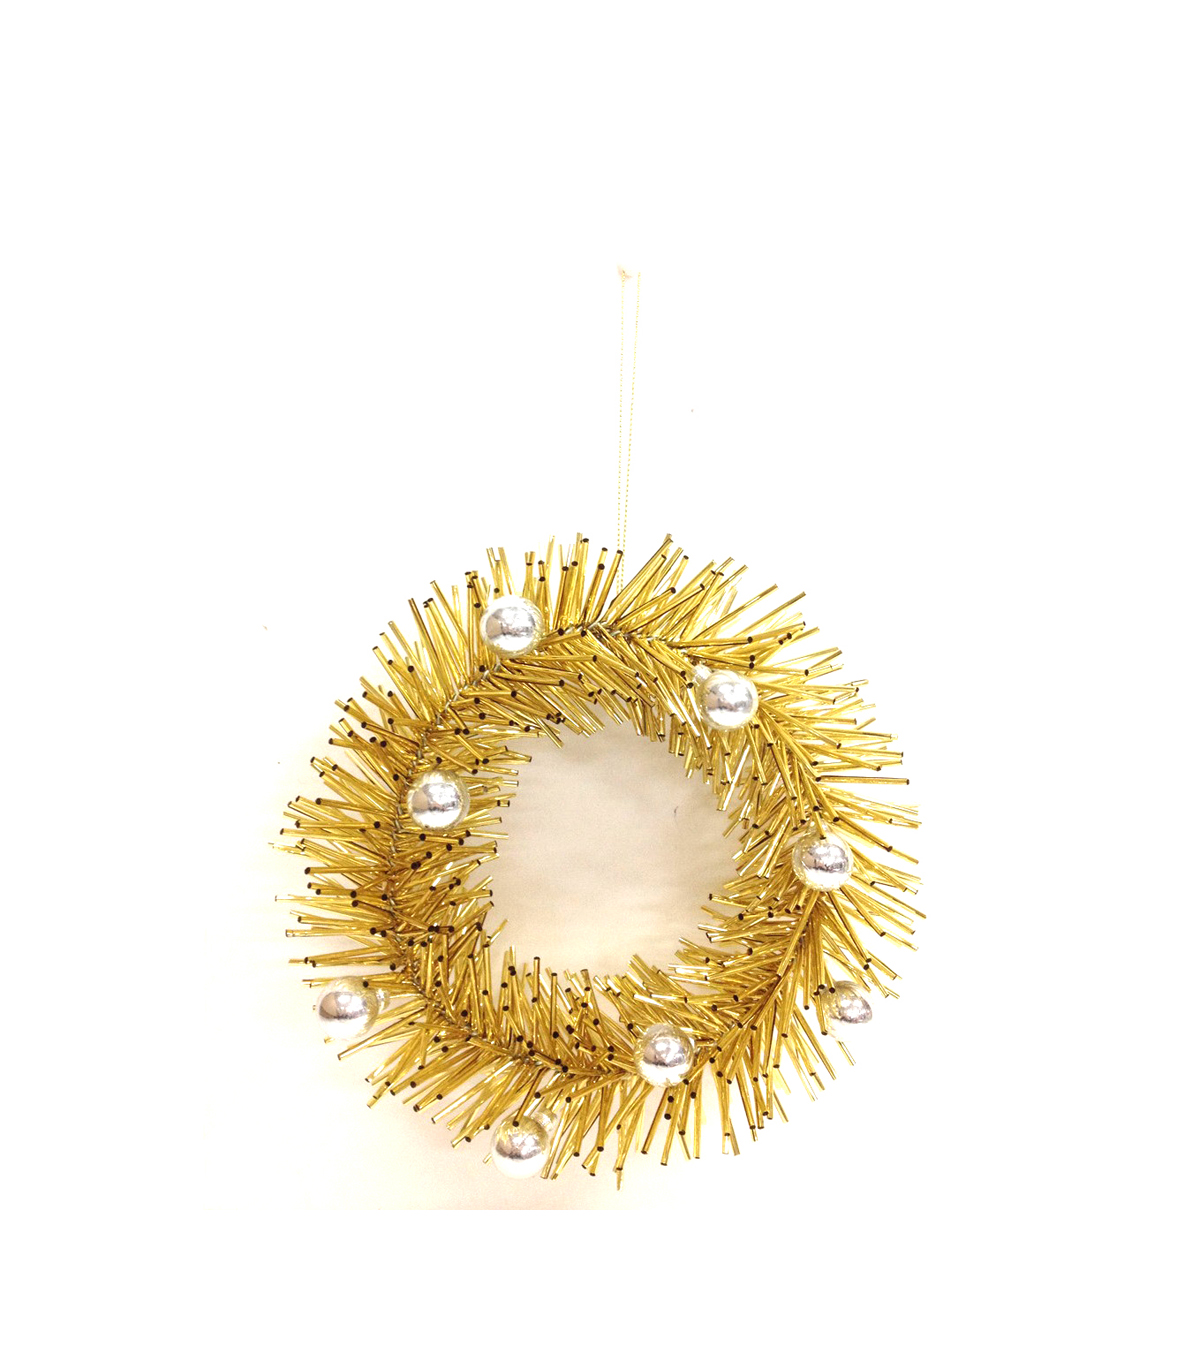 Holiday Cheer Gold Spiked Wreath Ornament